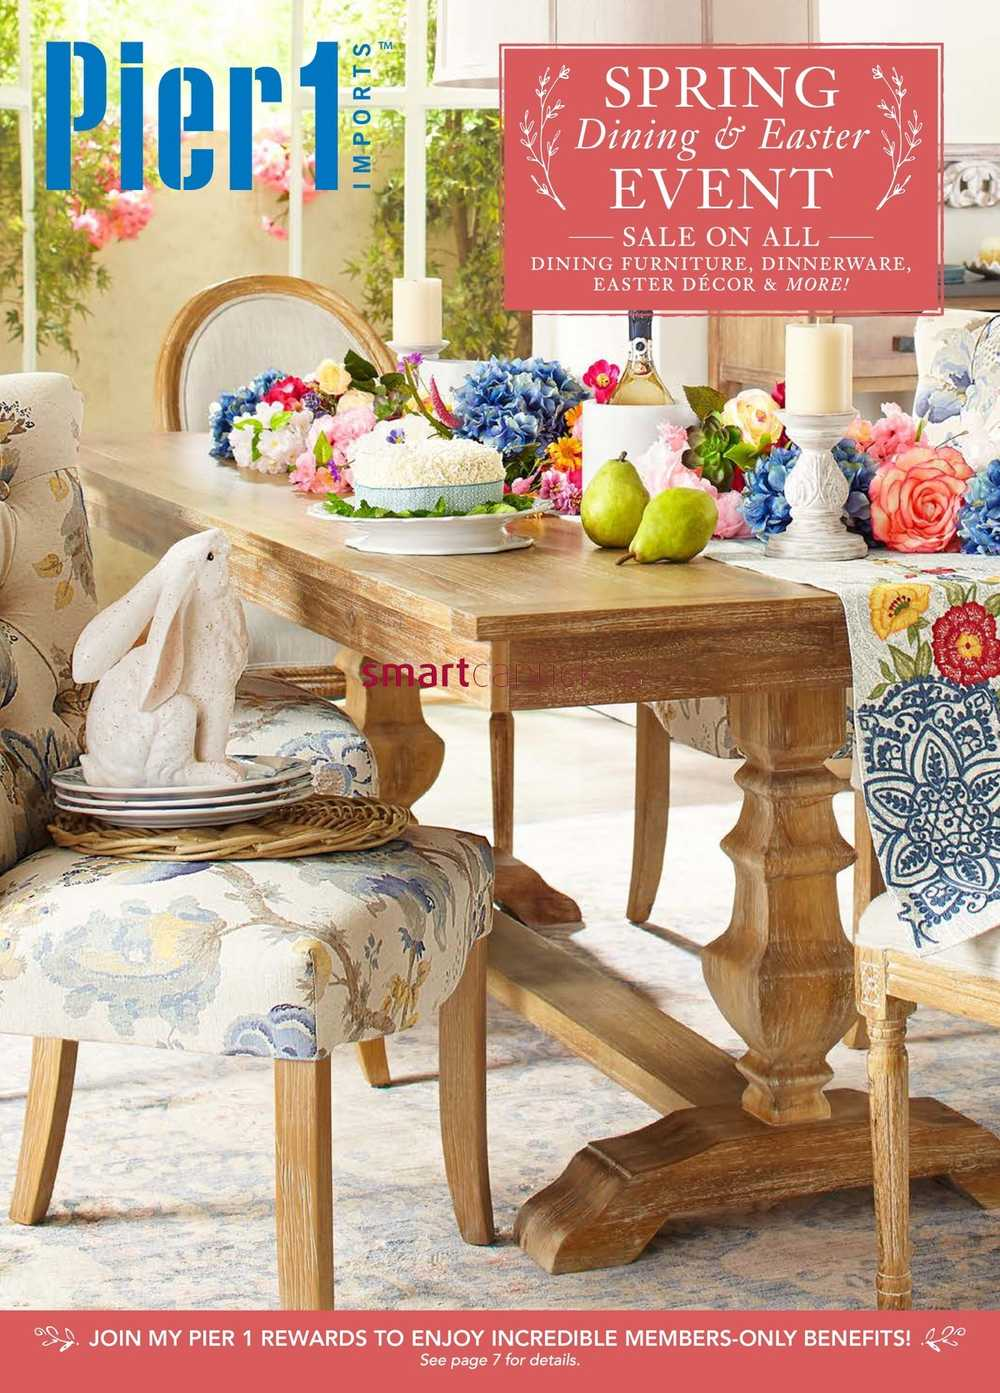 Find the best Pier 1 coupons, promo codes and deals for December All coupons hand-verified and guaranteed to work. Exclusive offers and bonuses up to % back!